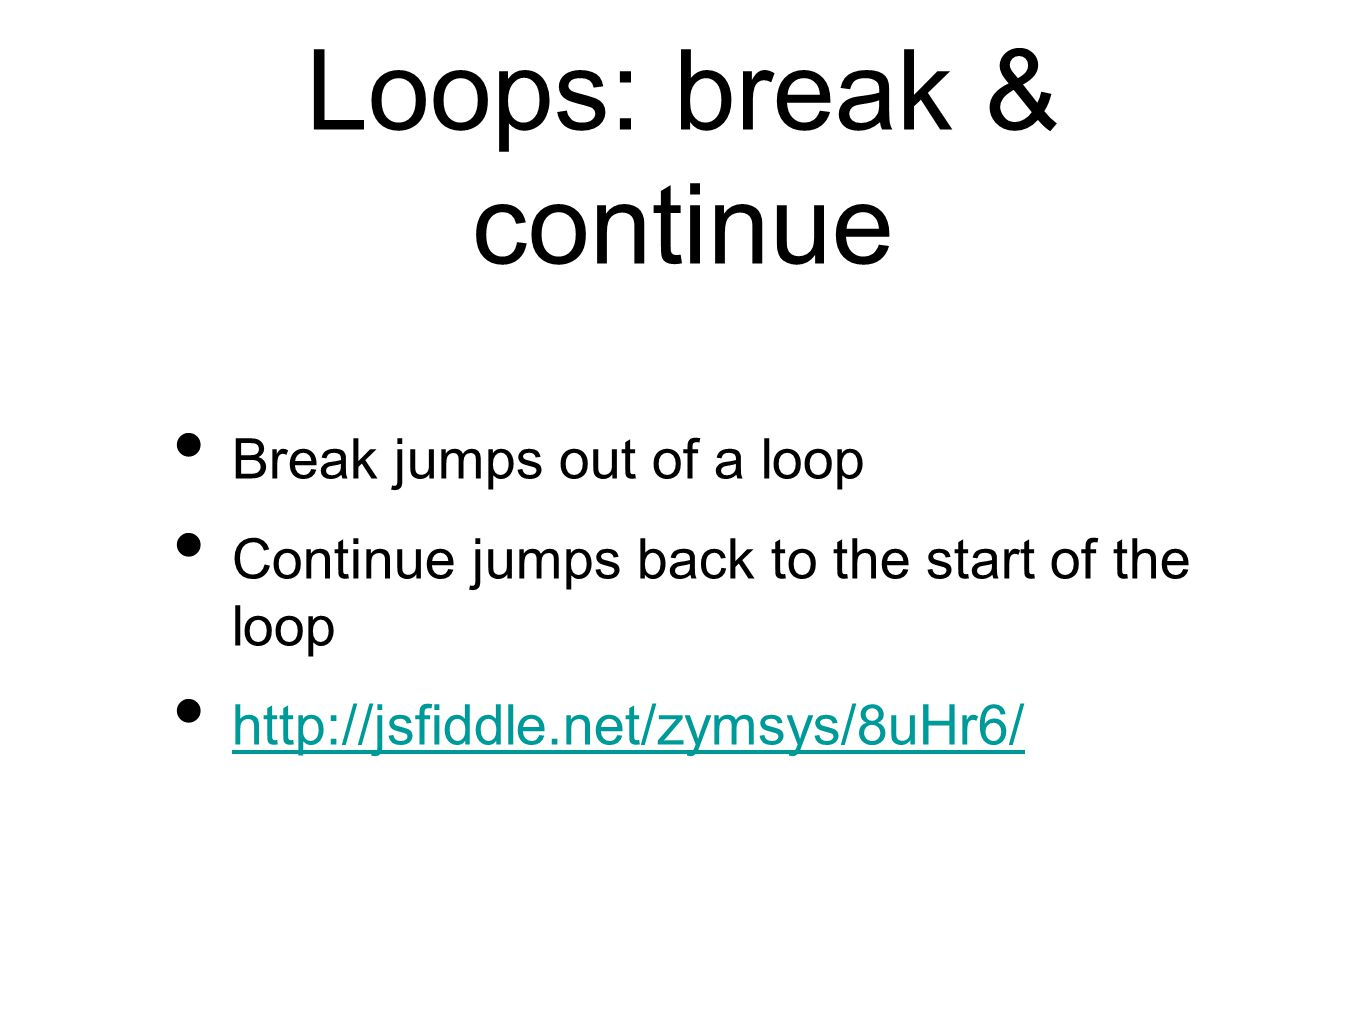 Loops: break & continue Break jumps out of a loop Continue jumps back to the start of the loop http://jsfiddle.net/zymsys/8uHr6/